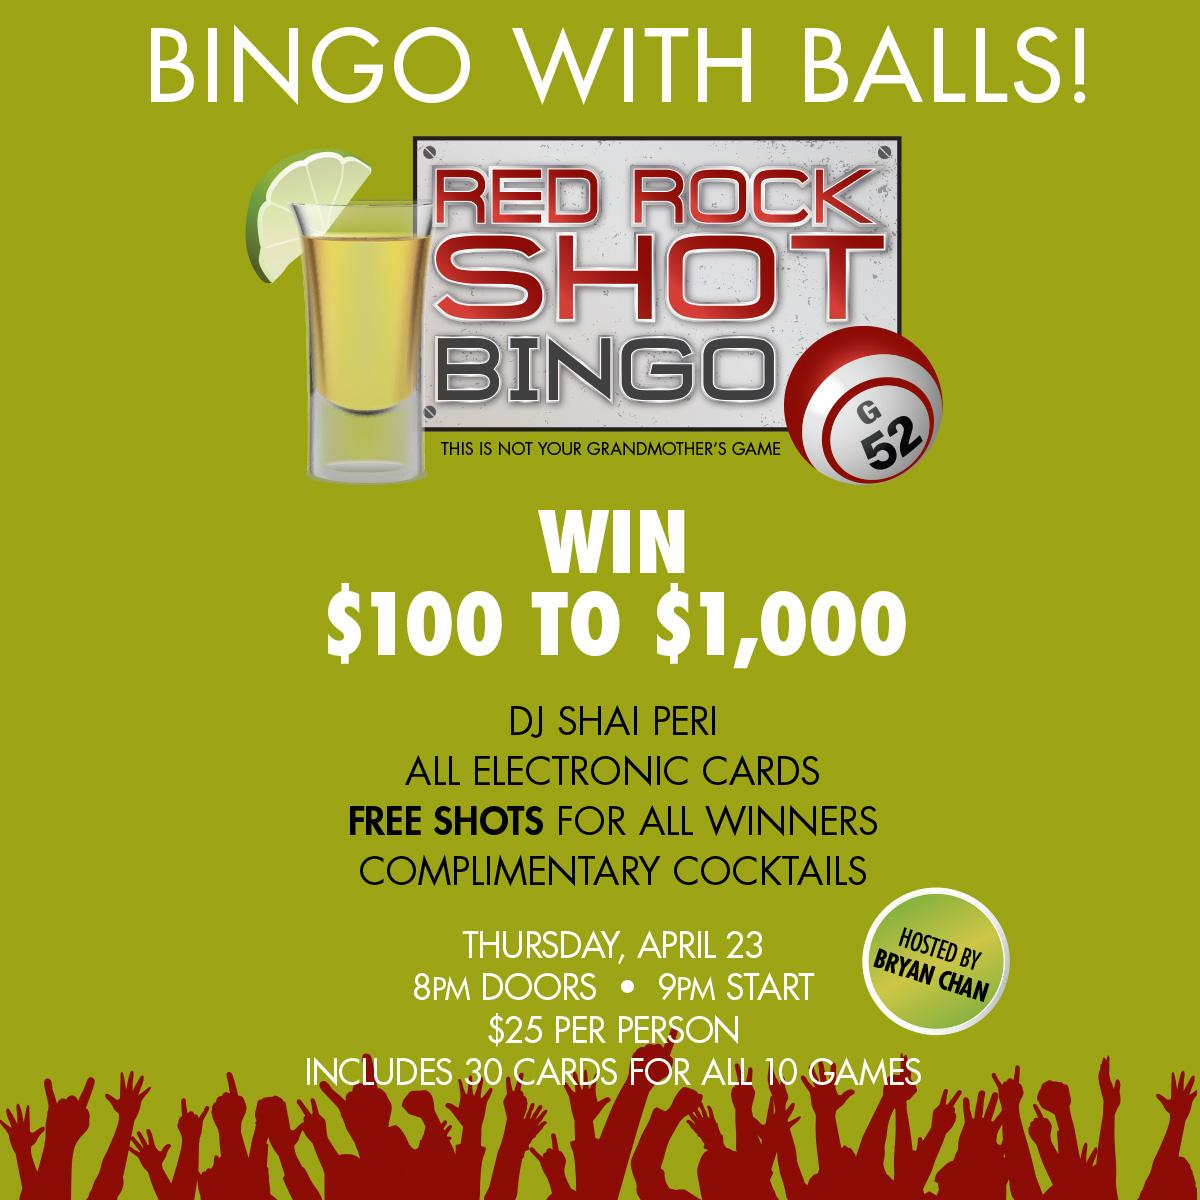 How to play bingo at red rock casino